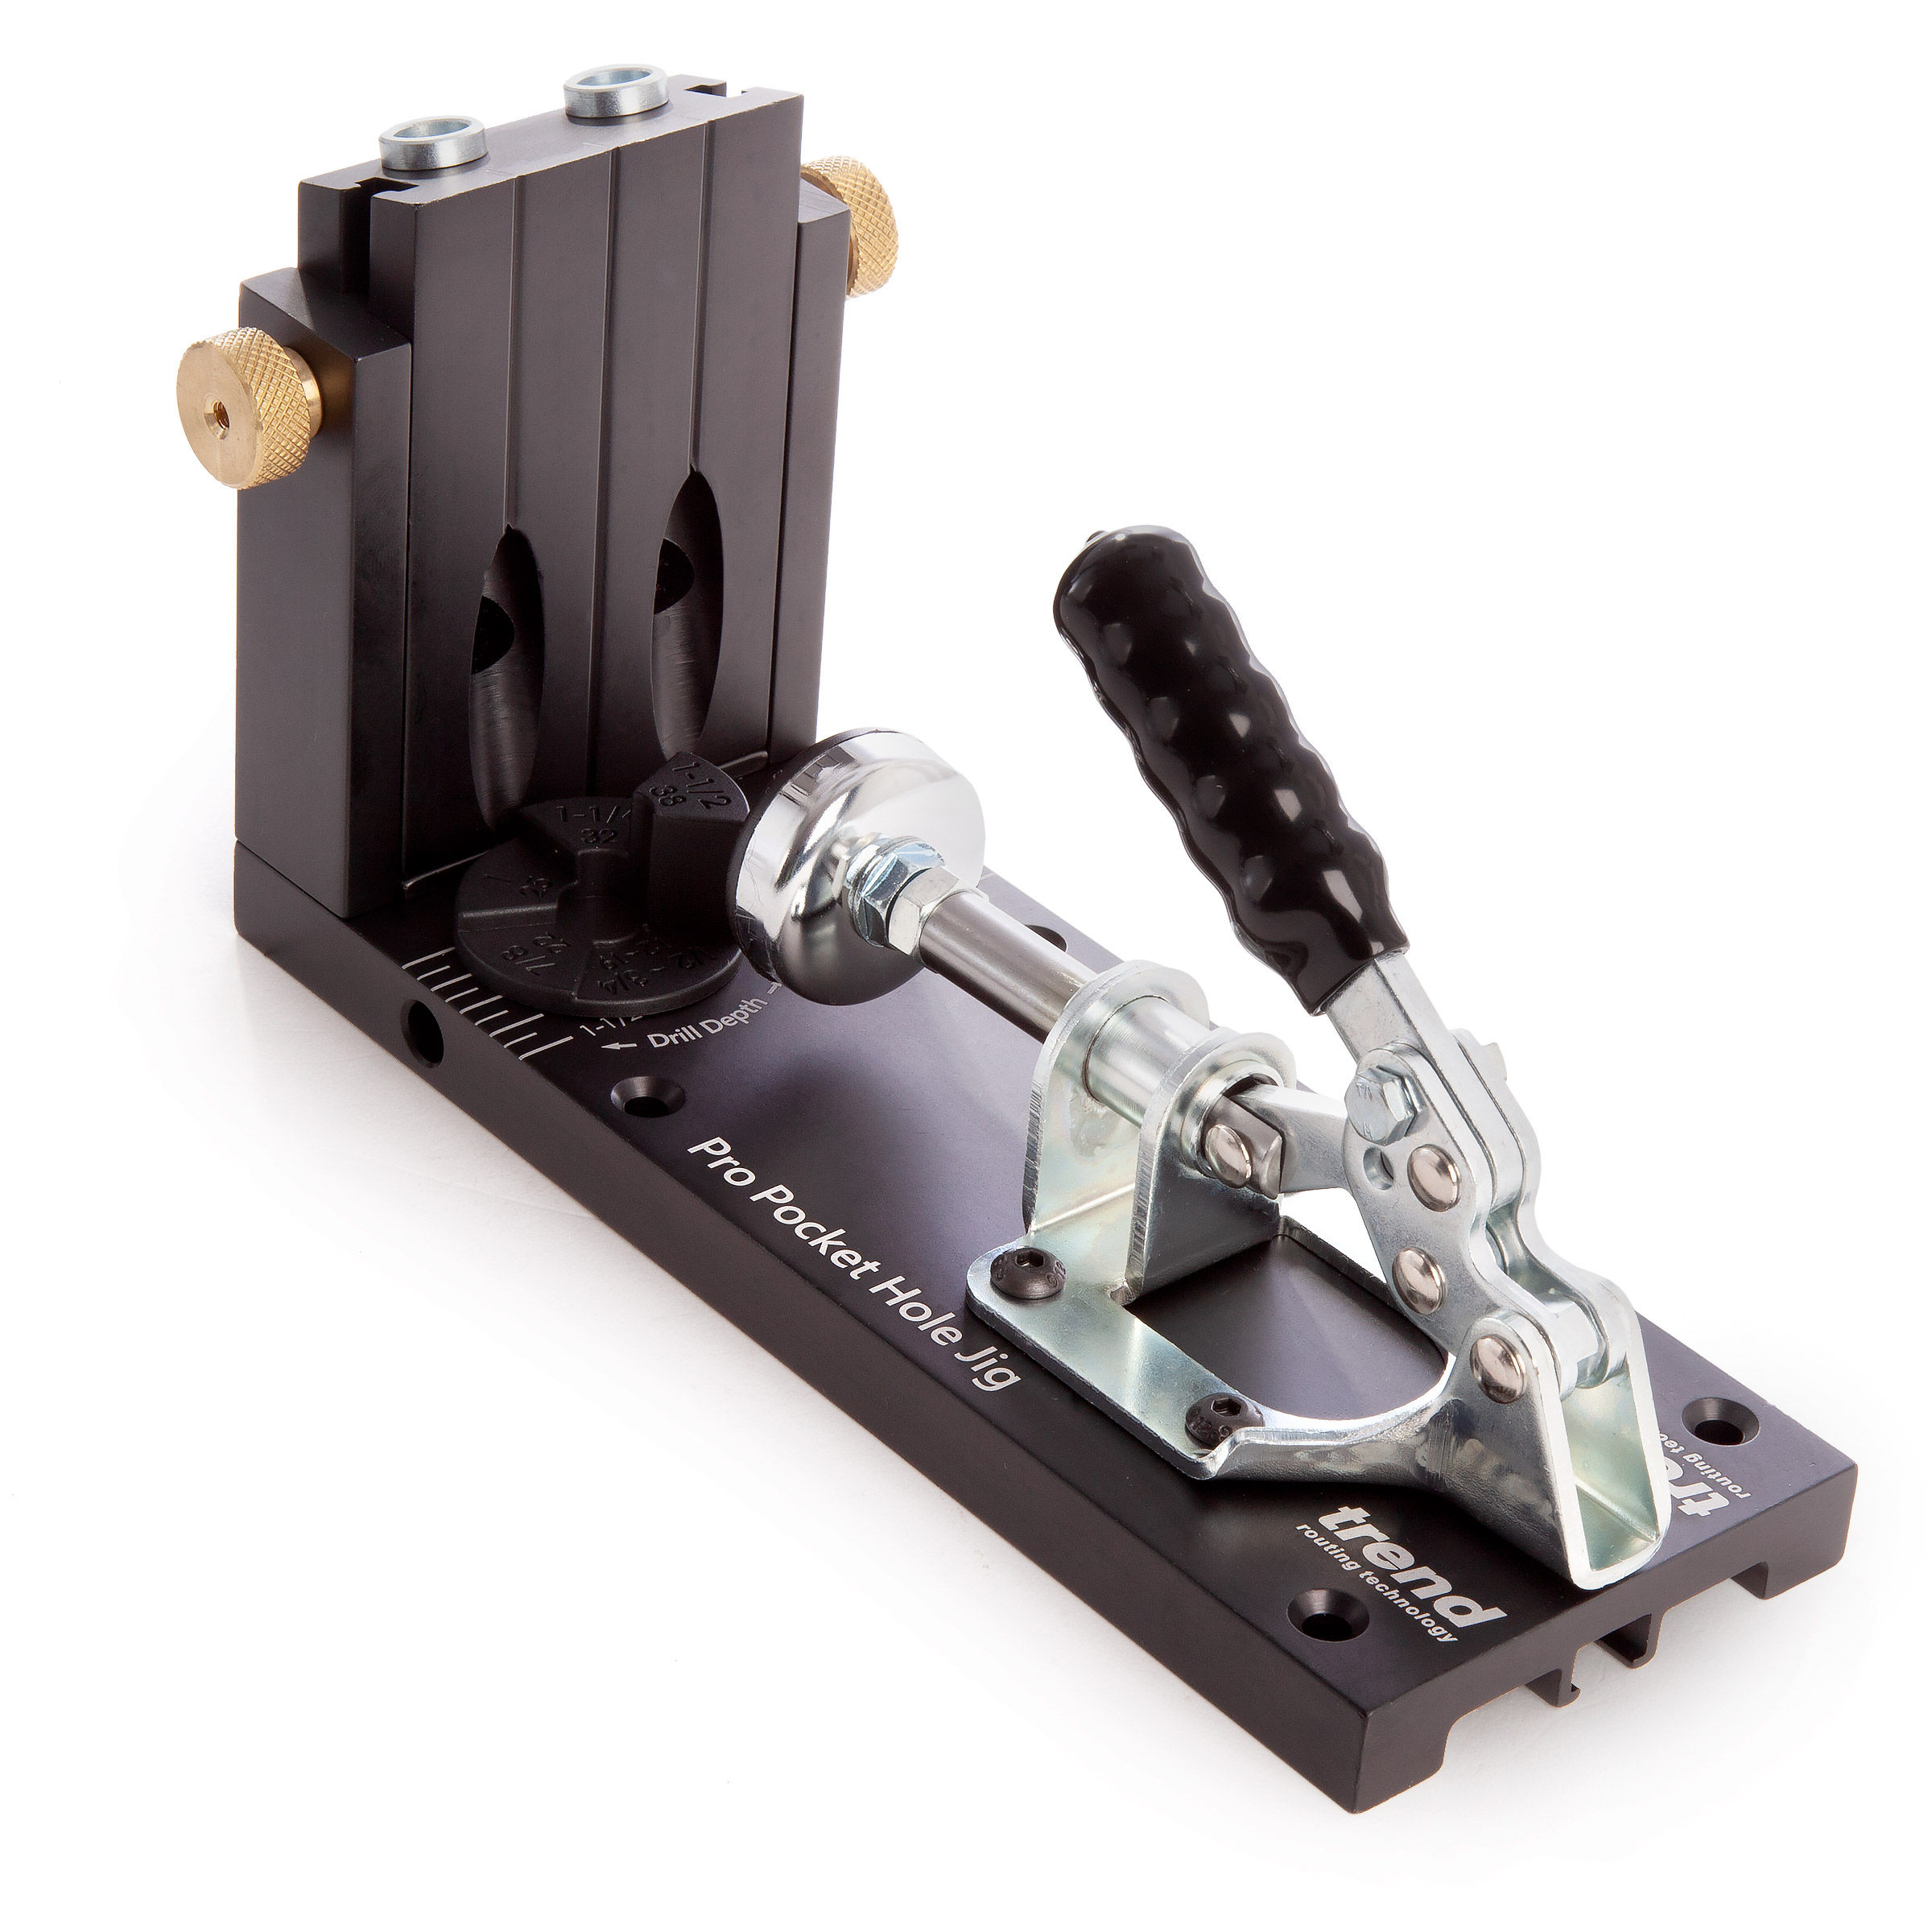 Trend PH/JIG/AK Pro Pocket Hole Jig for Timber and Plywood (12 7mm - 38mm)